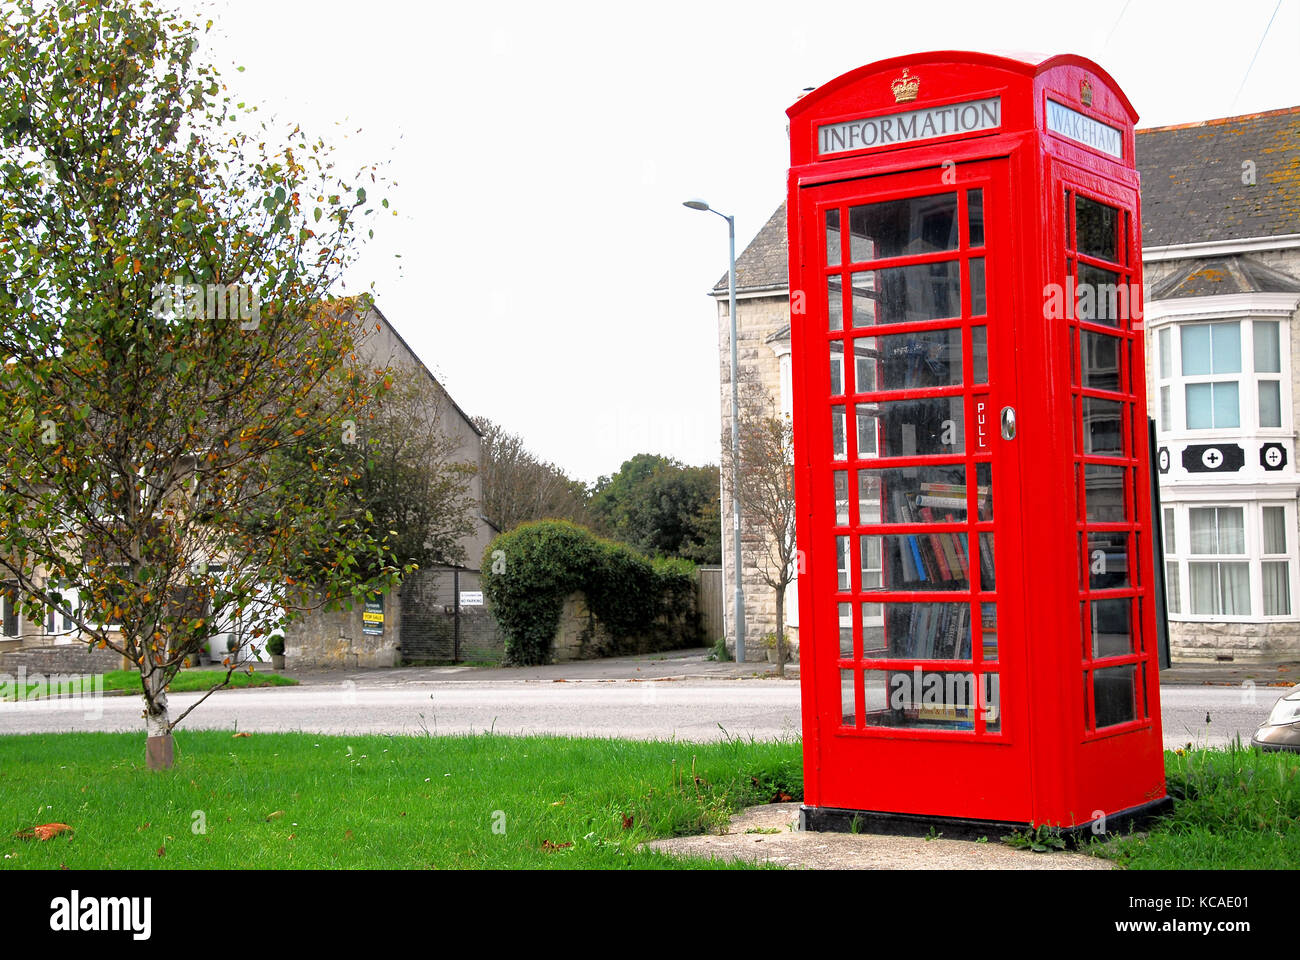 Wakeham, Dorset, UK. 3rd October 2017 - The former GPO telephone kiosk in Wakeham, Isle of Portland, which has been - Stock Image